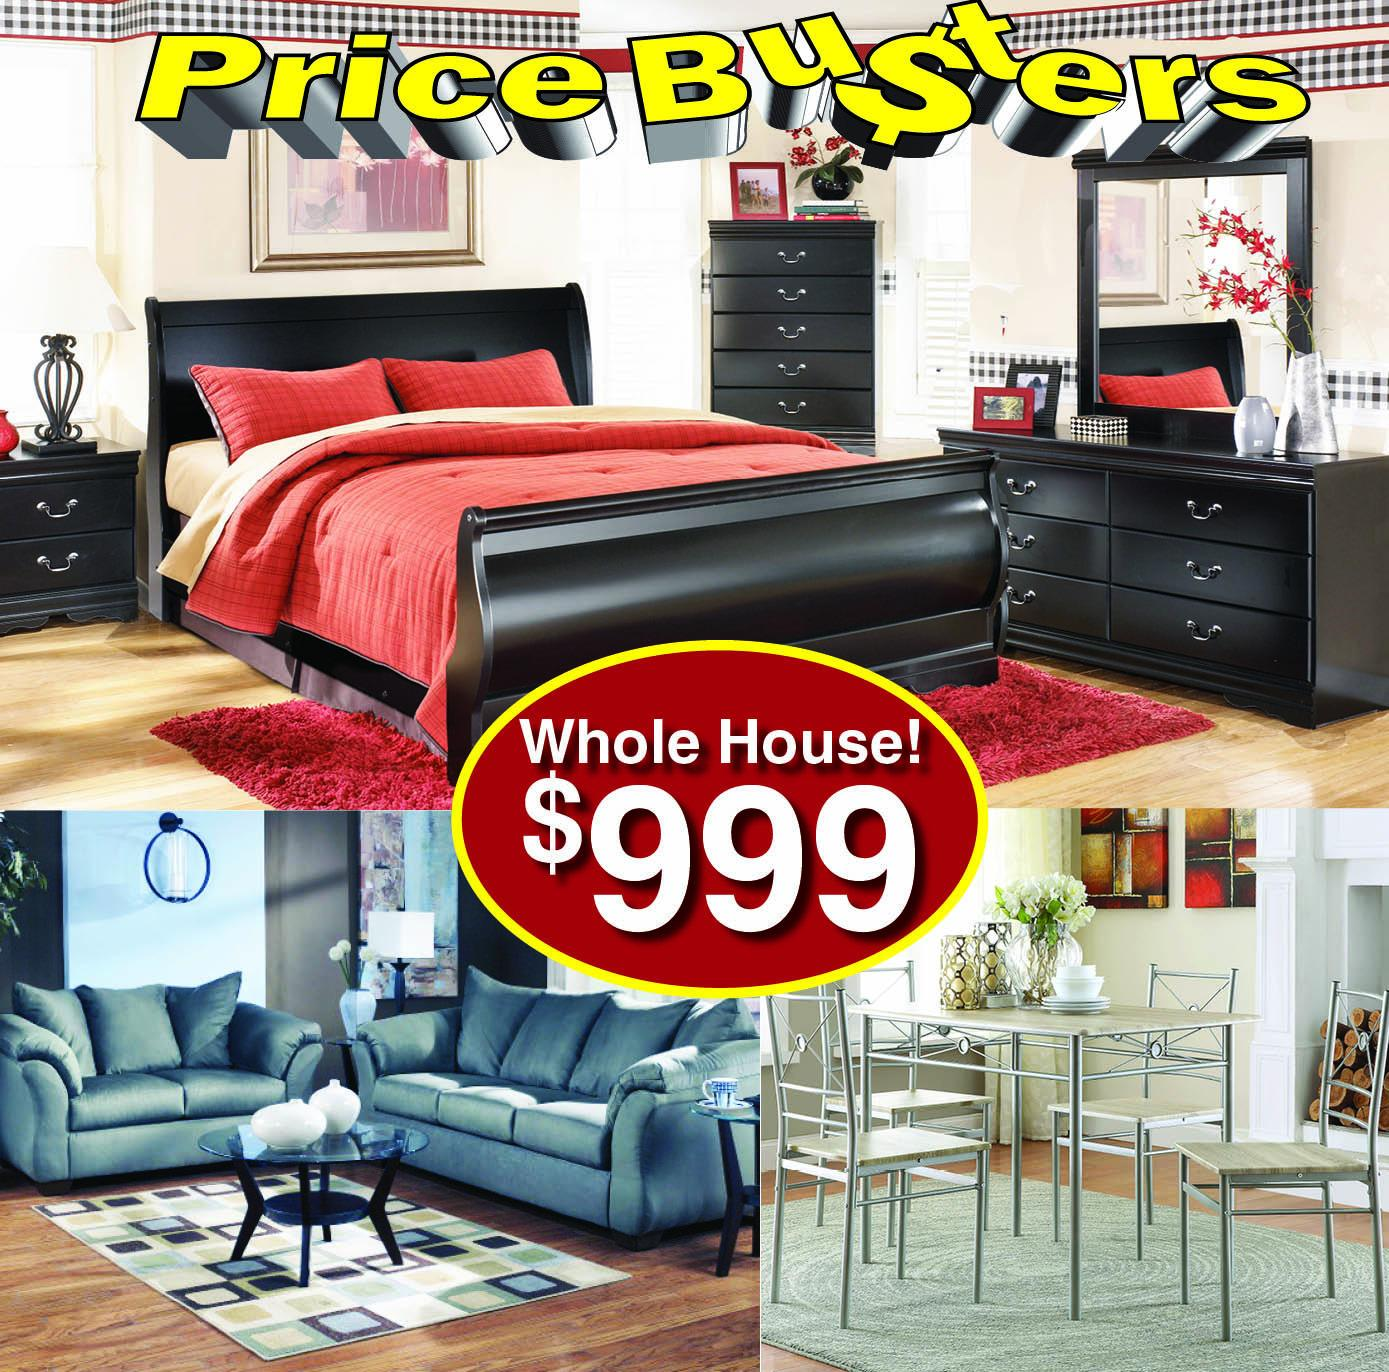 Cheap Furniture Baltimore Price Busters Discount Furniture Furniture Store